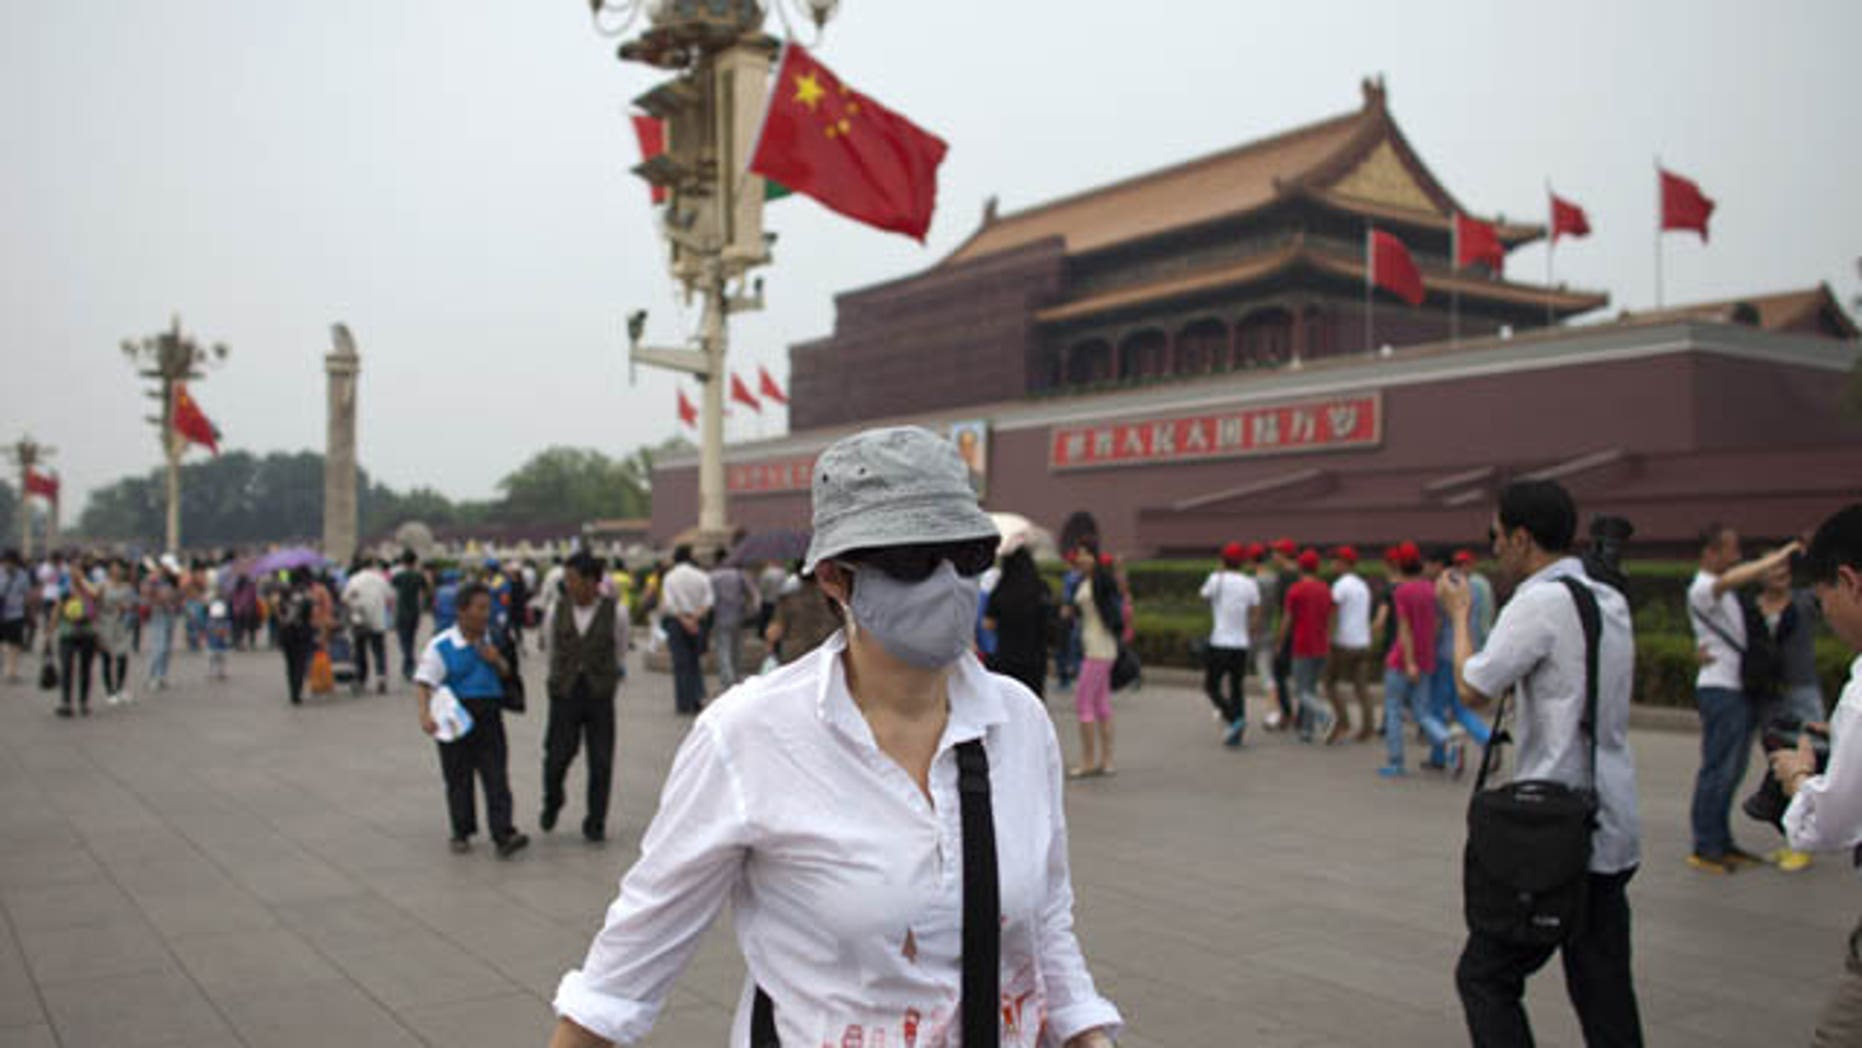 FILE - In this May 7, 2013 file photo, a foreign tourist wearing a mask walks in front of Tiananmen Gate on a polluted day in Beijing, China. (AP Photo)